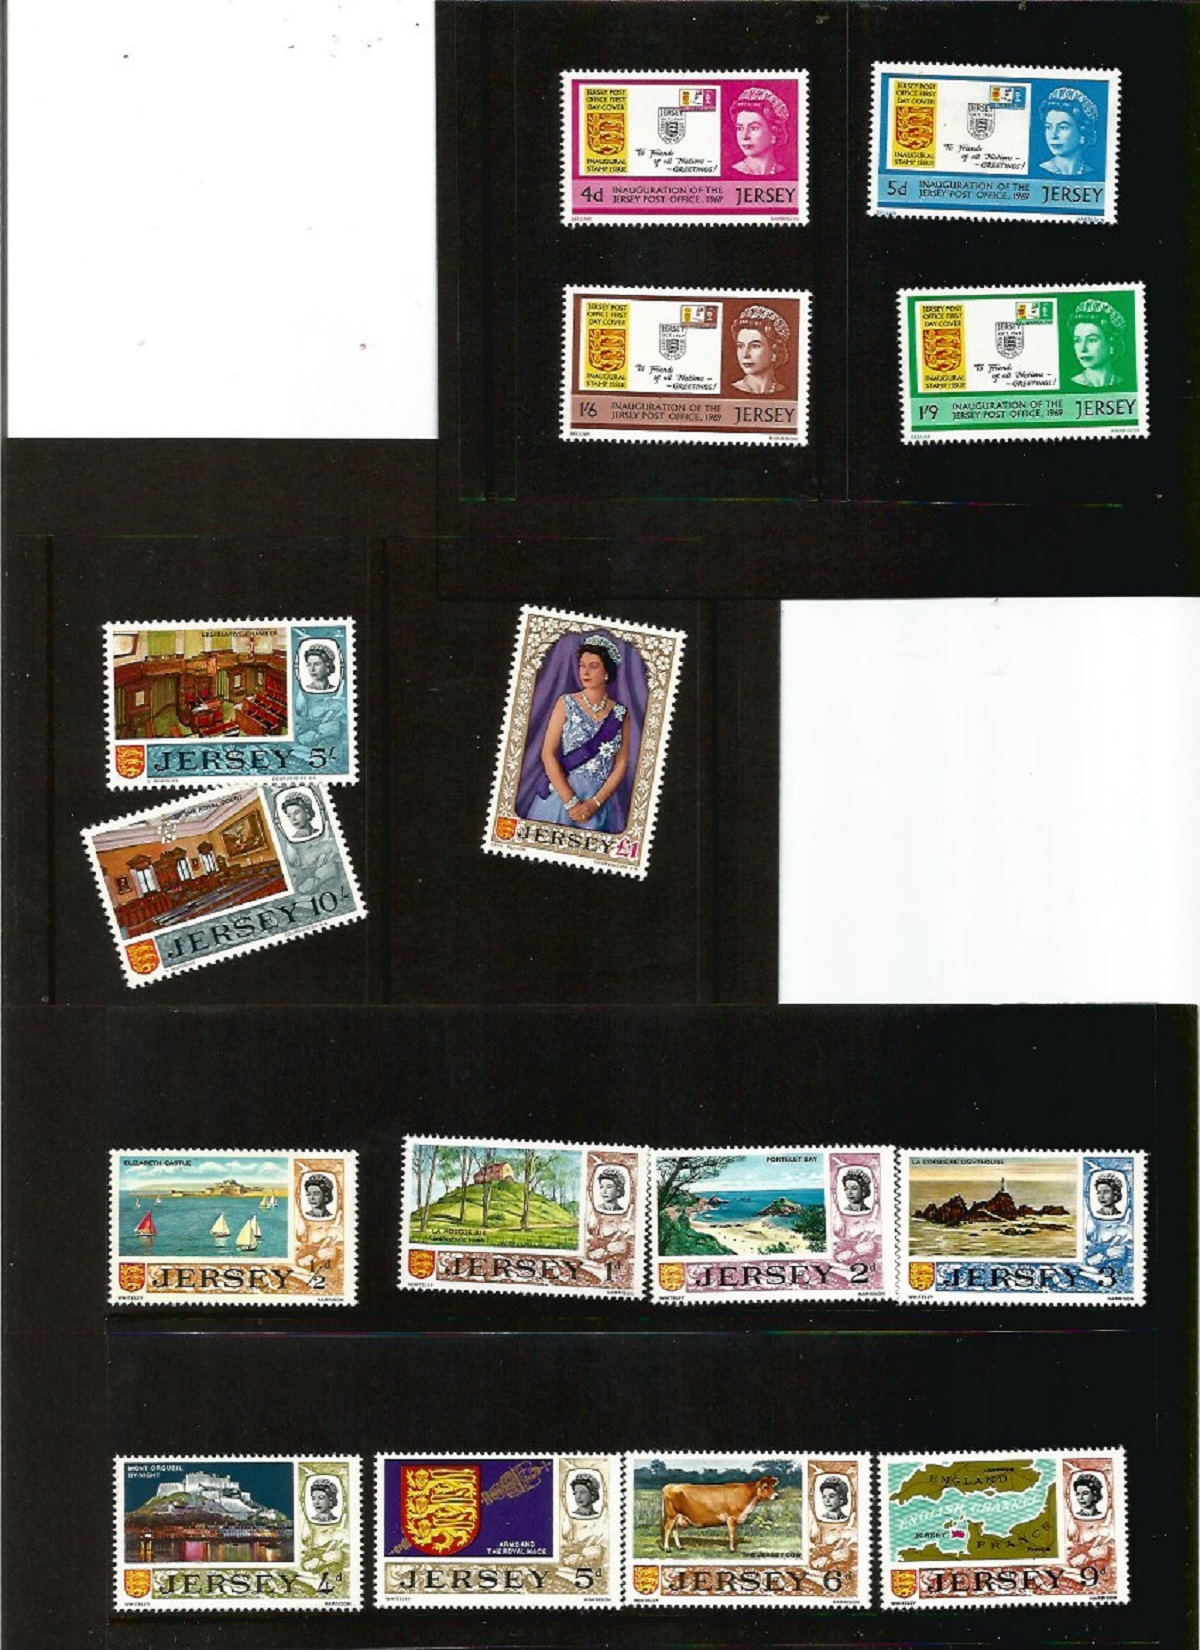 Jersey postal collection. Includes 2 presentation packs silver jubilee and 1st defs. 3 FDC's -